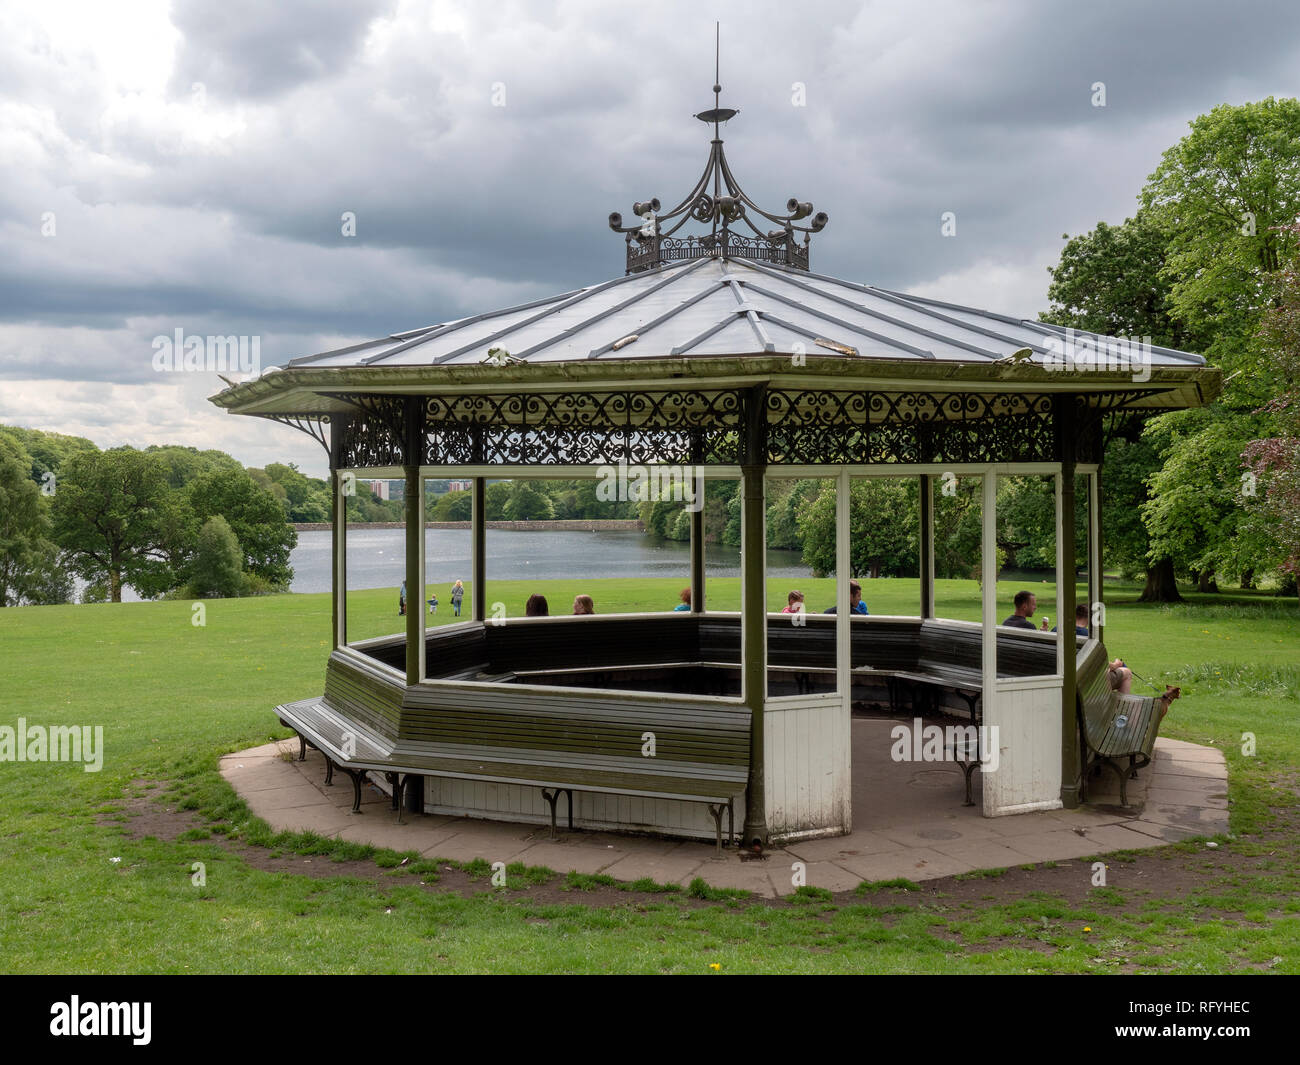 The Bandstand in Roundhay Park, Leeds, Yorkshire, England, UK. Stock Photo